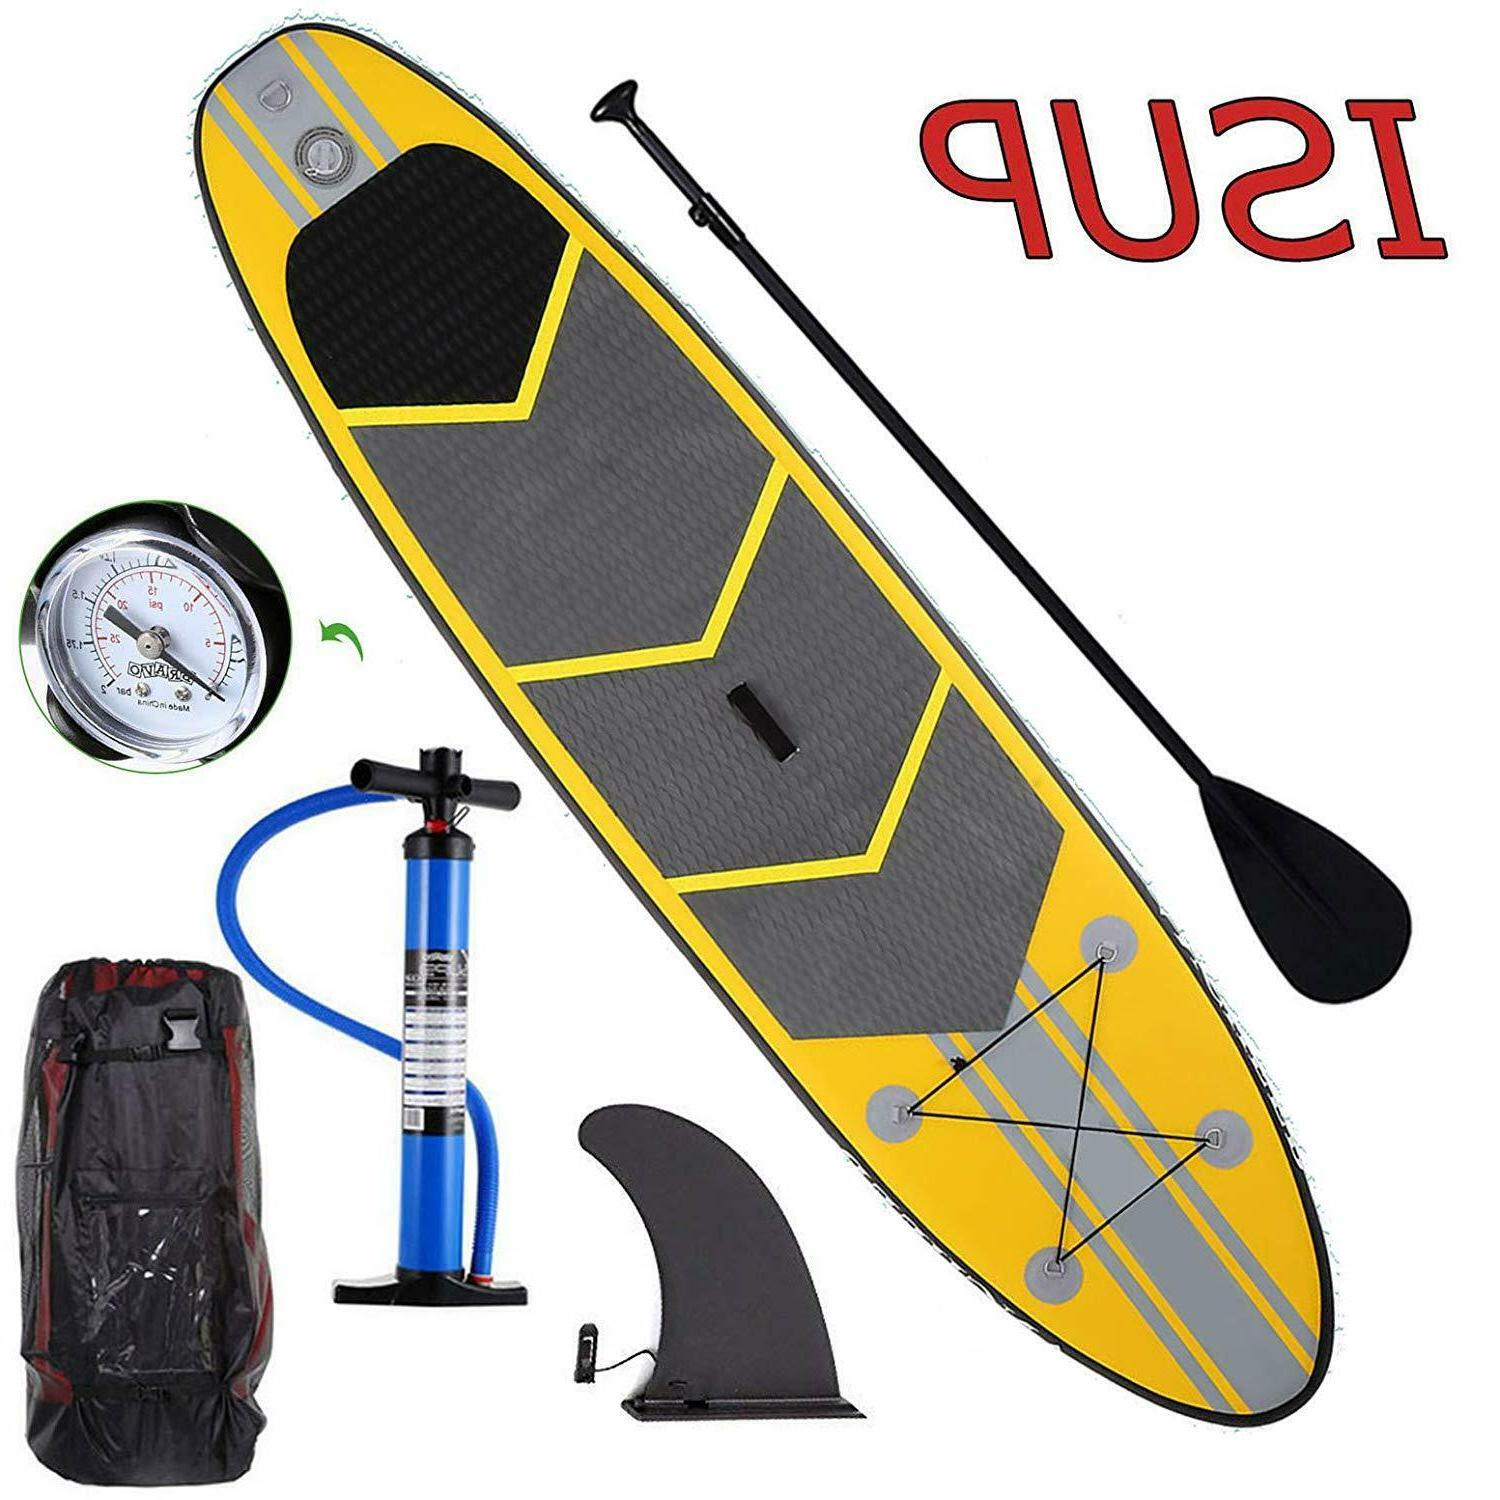 USA~10ft Inflatable Stand Up Paddle Board iSUP Adjustable Pa